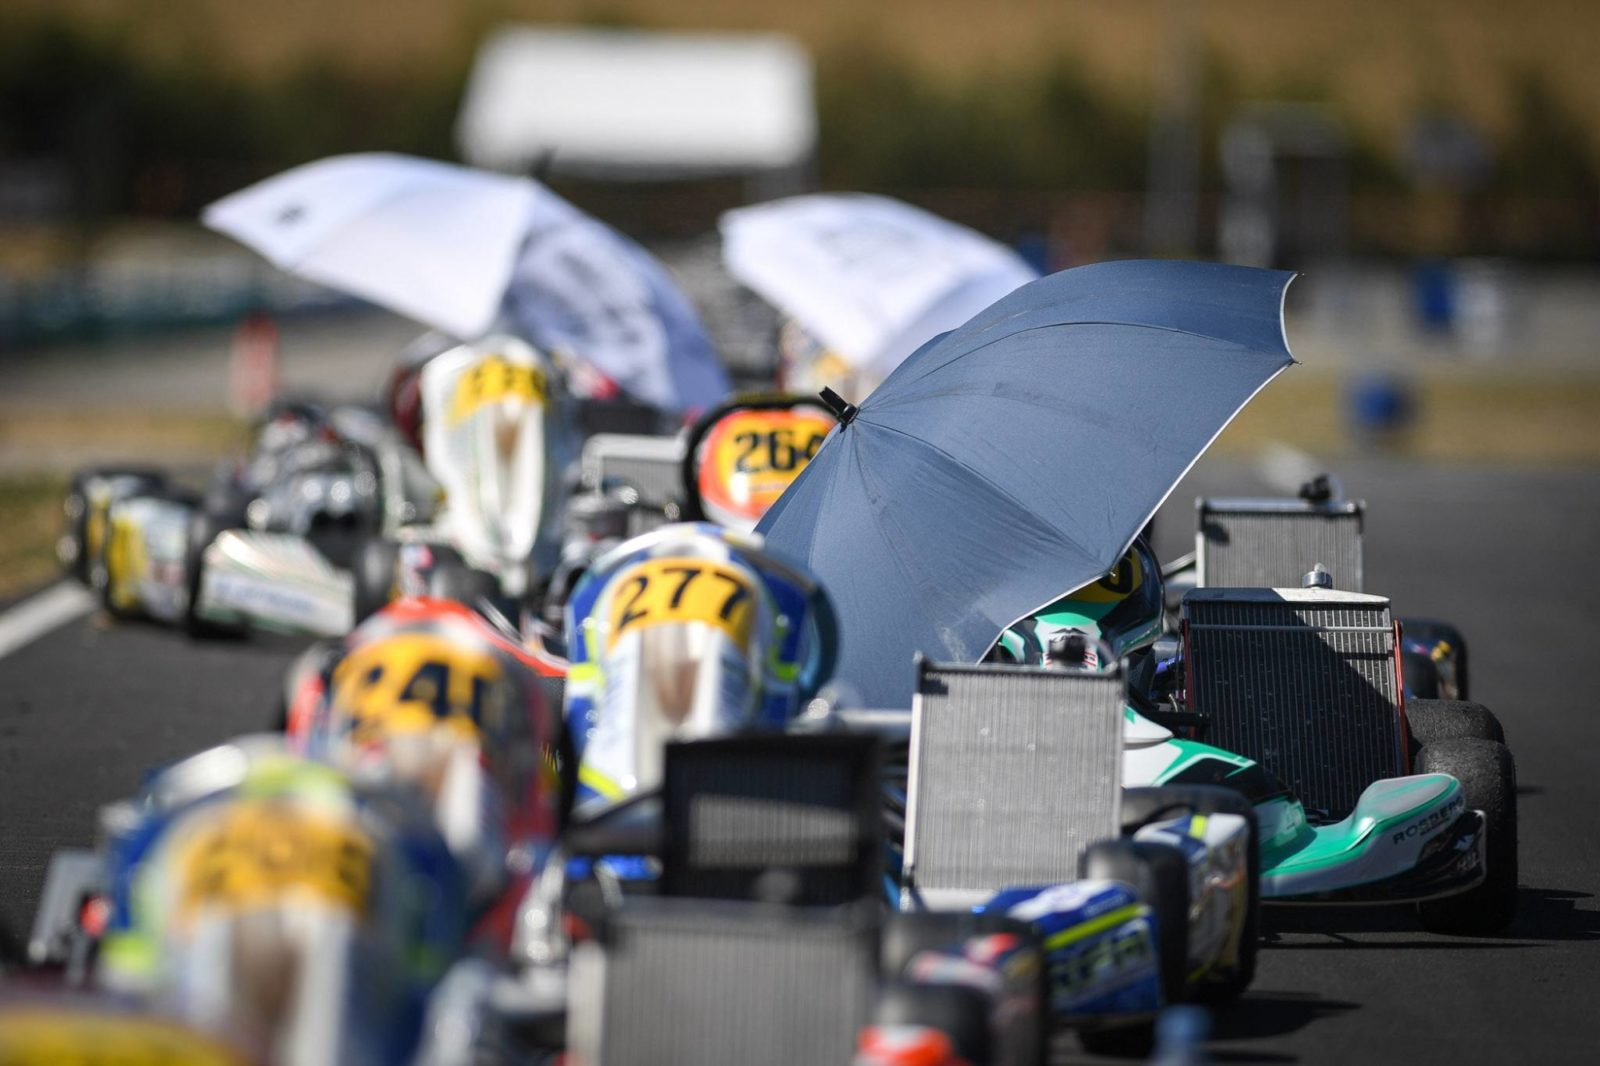 Umbrella's protect engines from the harsh sun